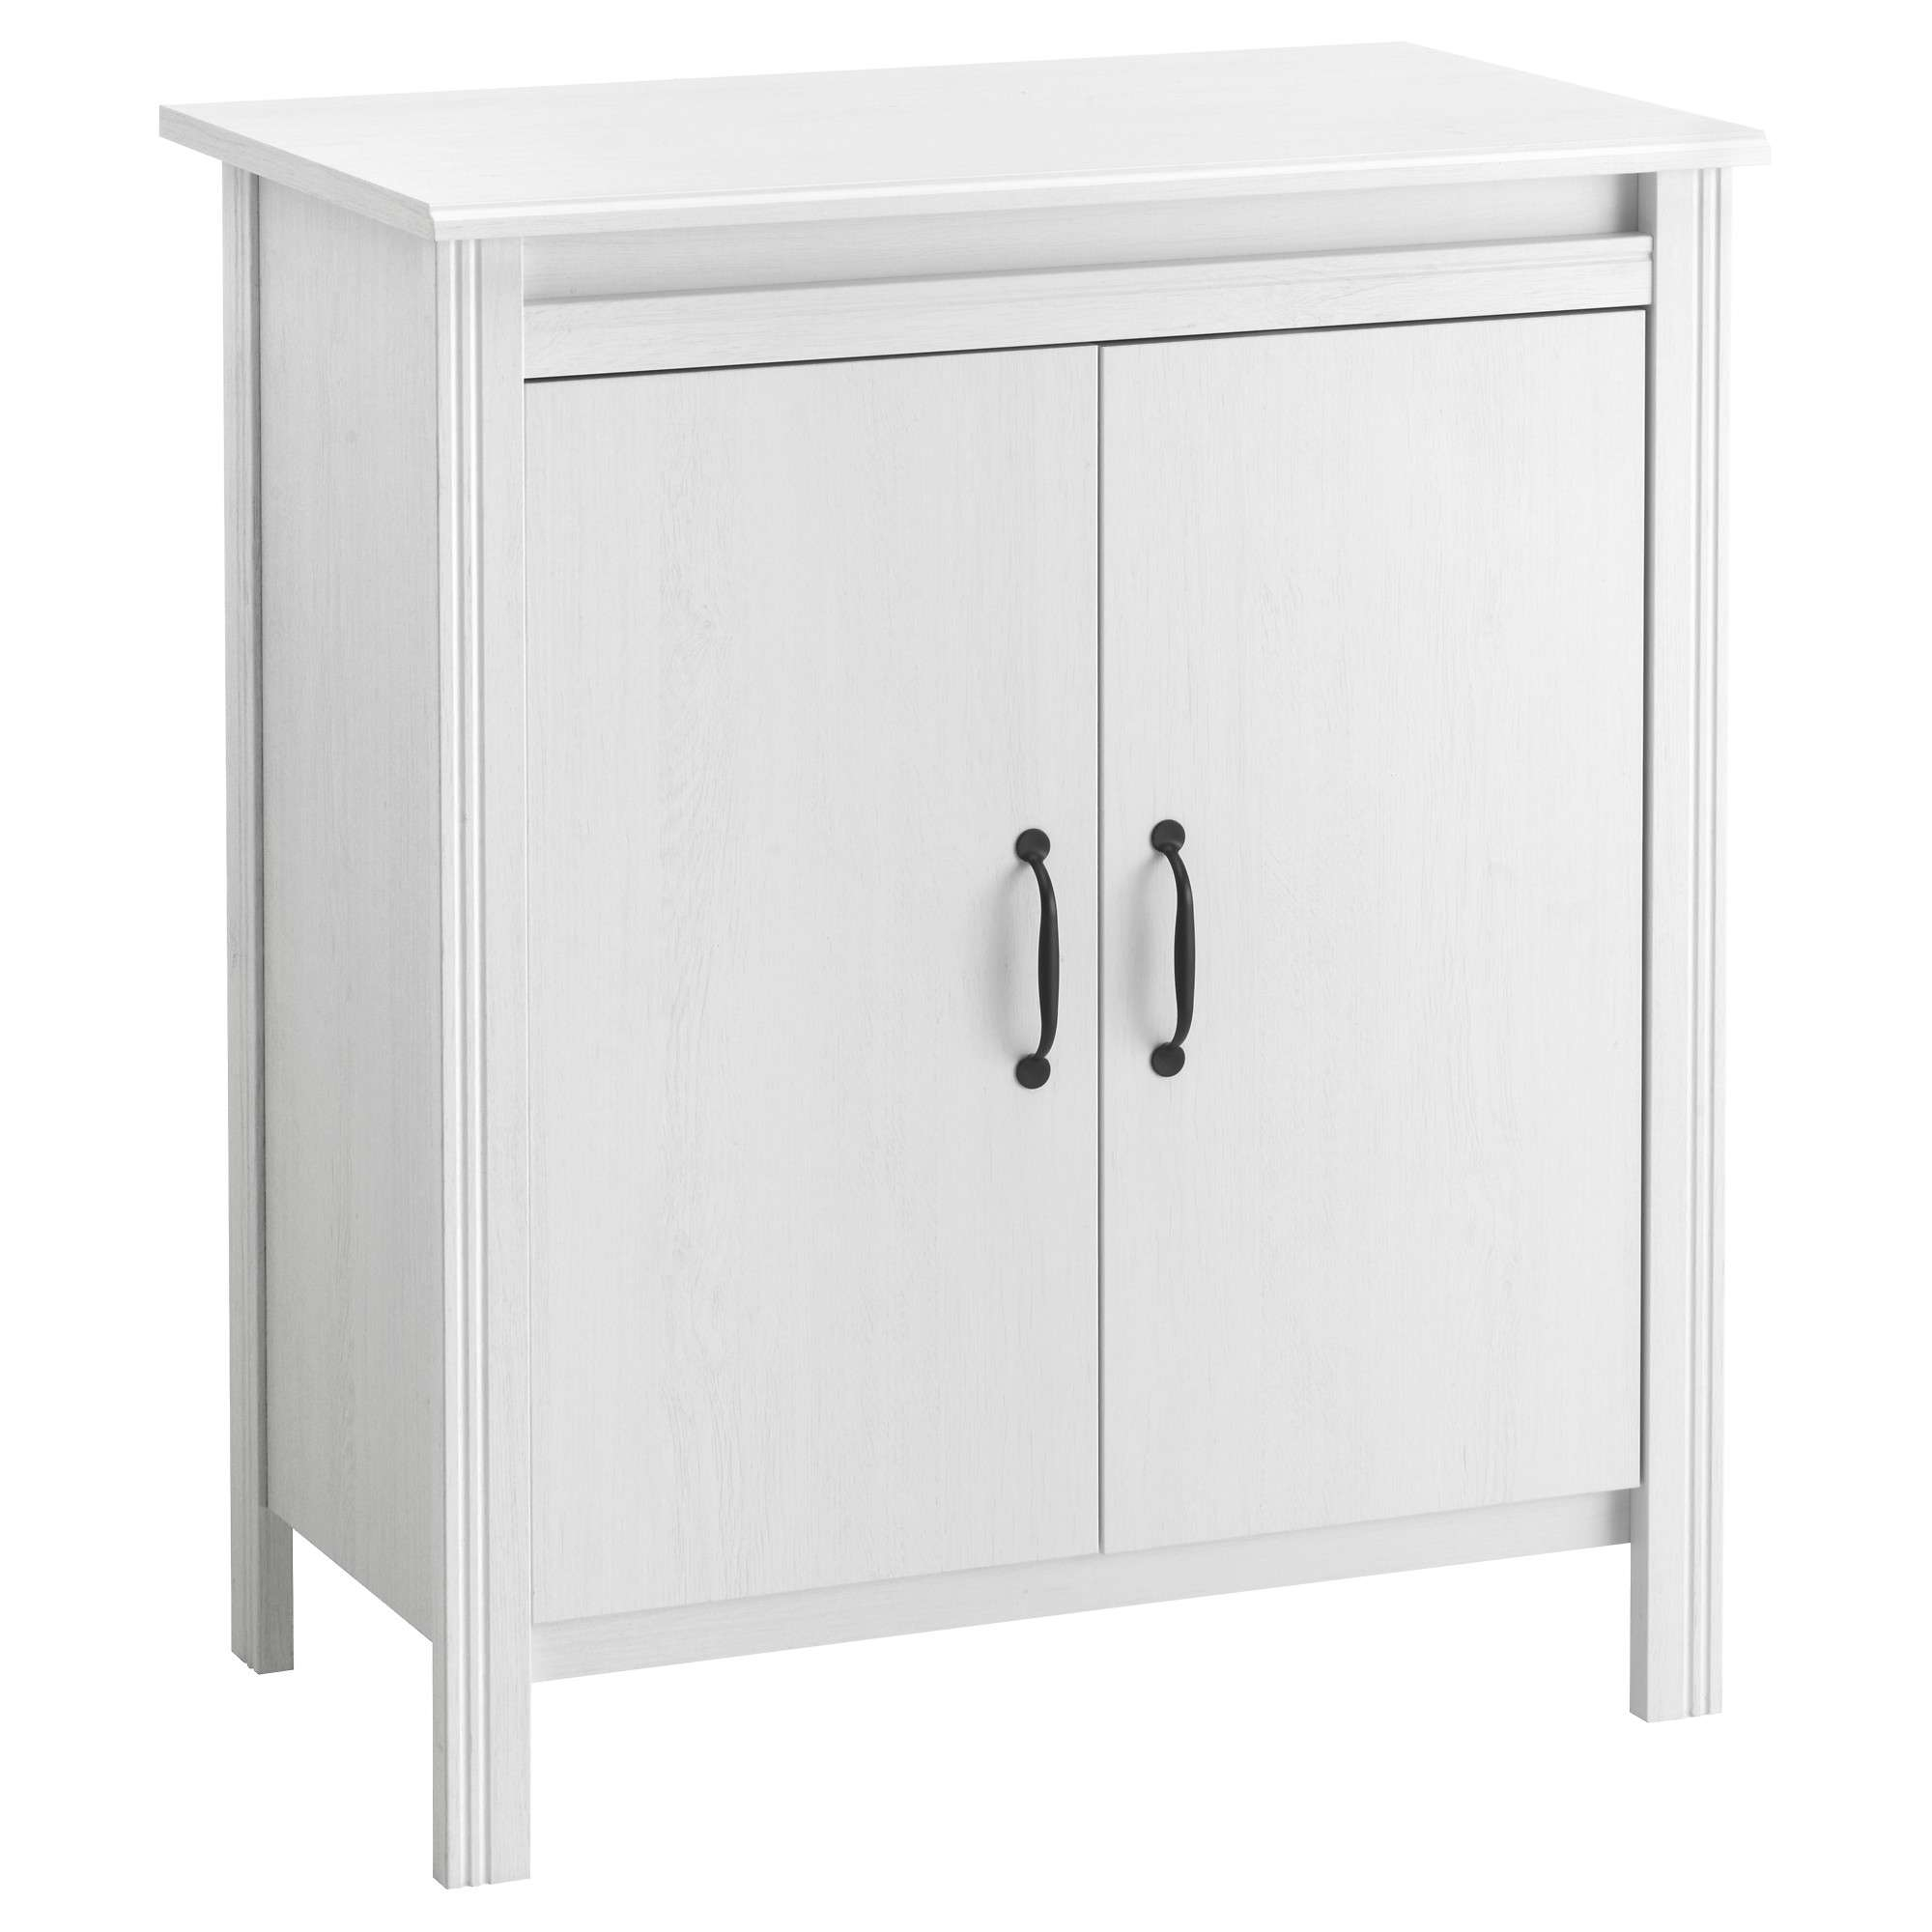 Cabinets & Sideboards – Ikea Inside 36 Inch Sideboards (View 4 of 20)